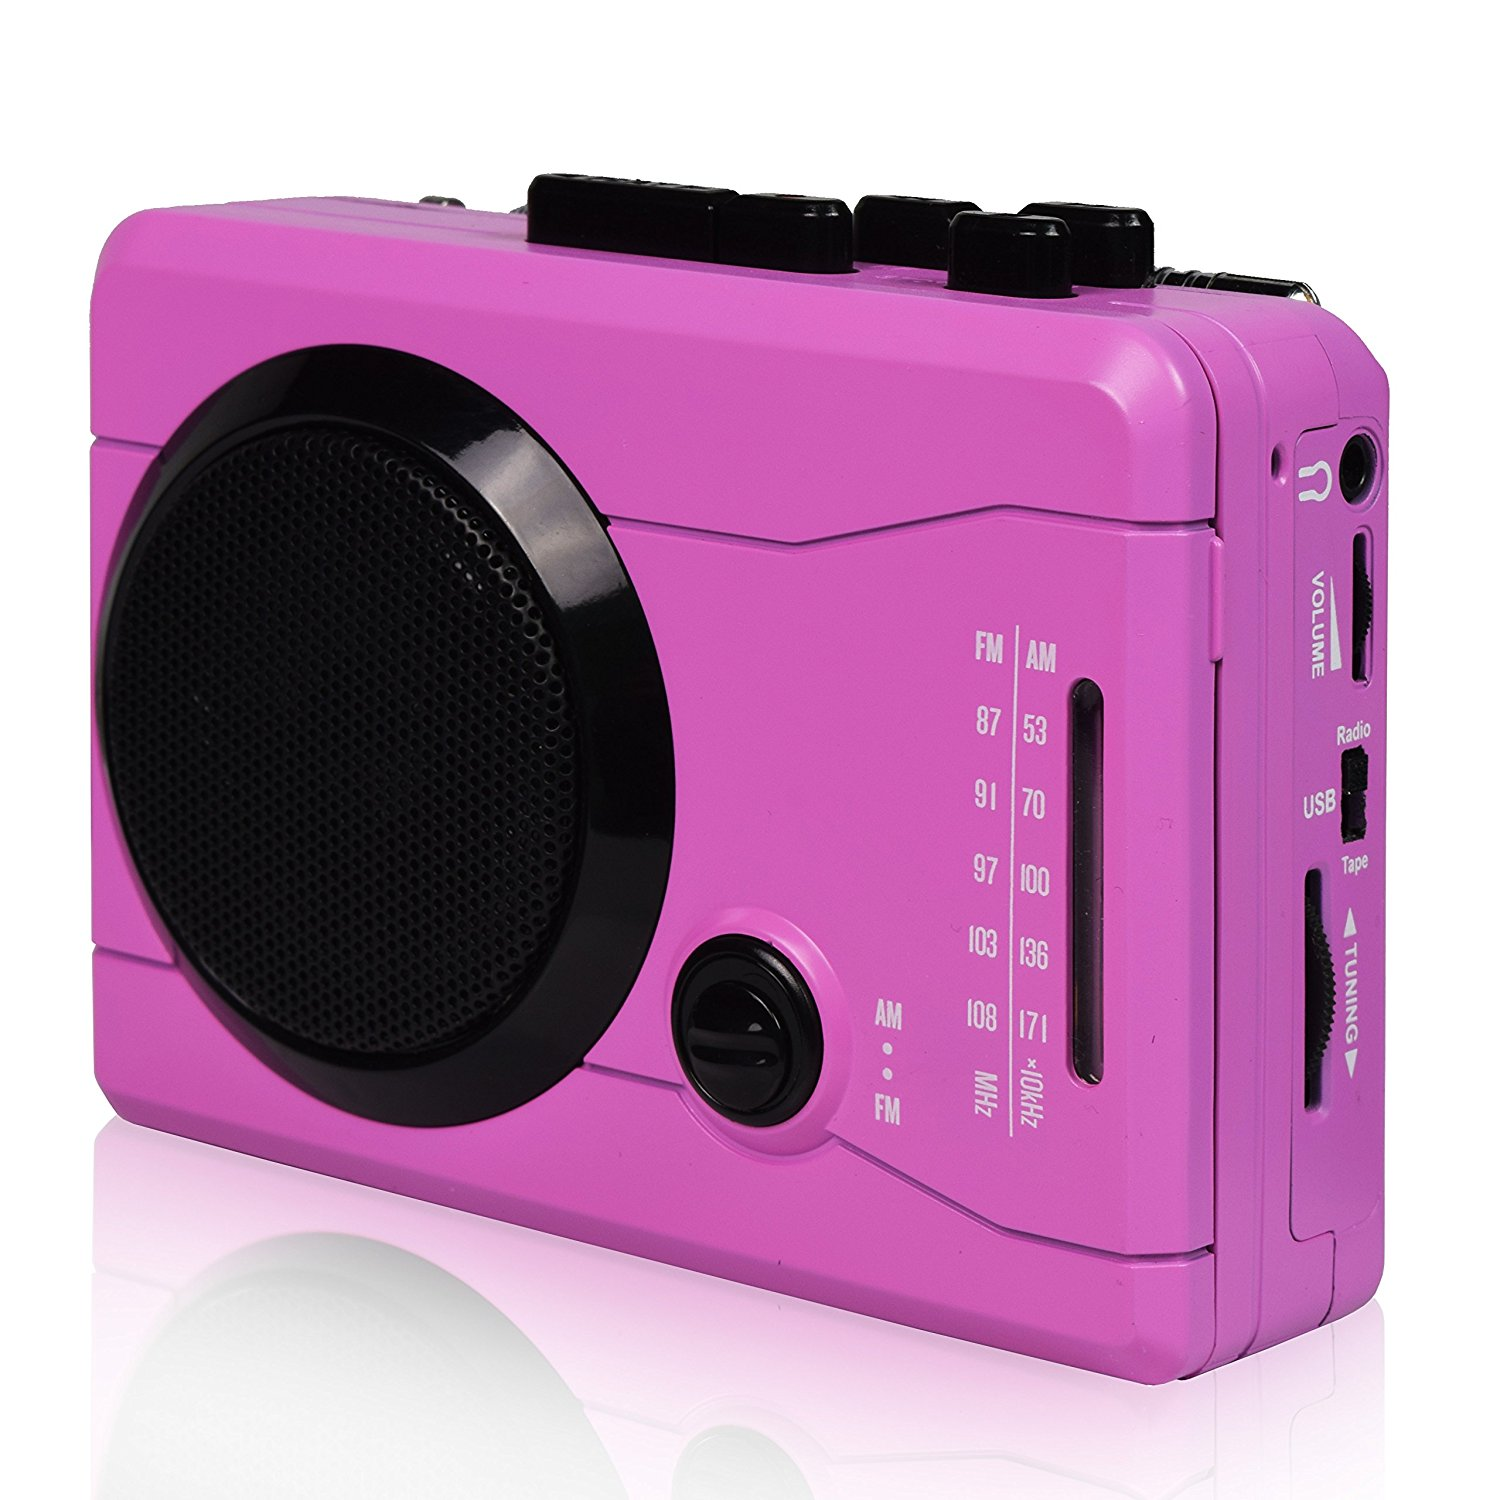 Cassette Tape To MP3 CD Converter Via USB, Mini Personal cassette mp3 converter & Cassette Player-Wireless AM/FM Radio and Voice Radio Cassette Recorder with Stero Speaker/Earphone(Pink)